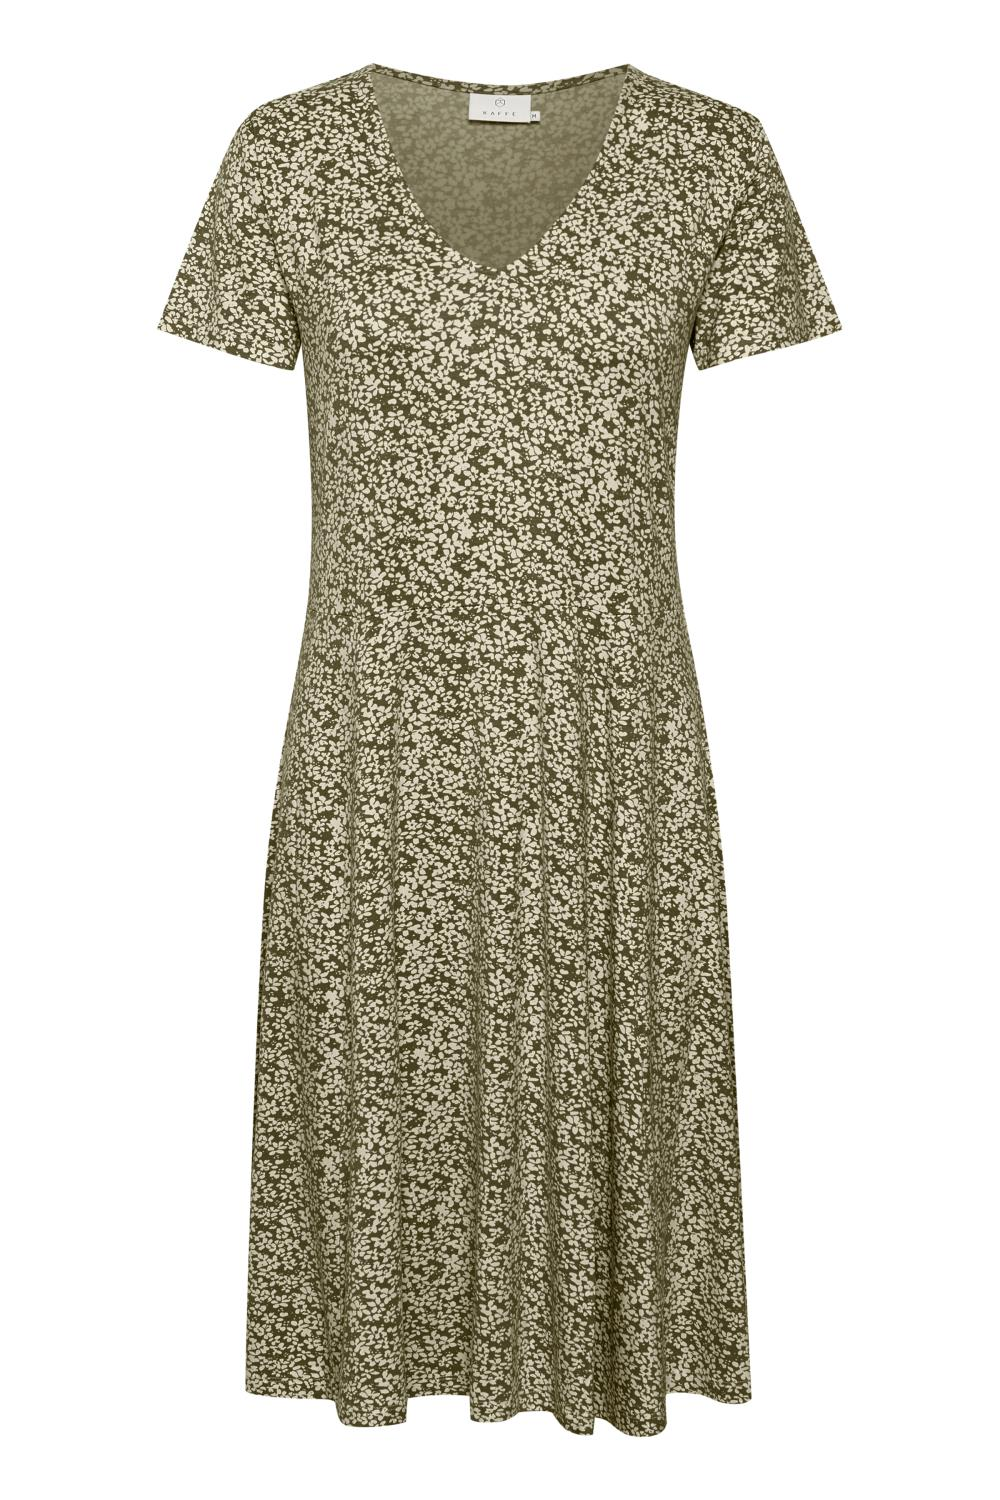 Kaffe Molly Jersy Dress, mønstret oliven